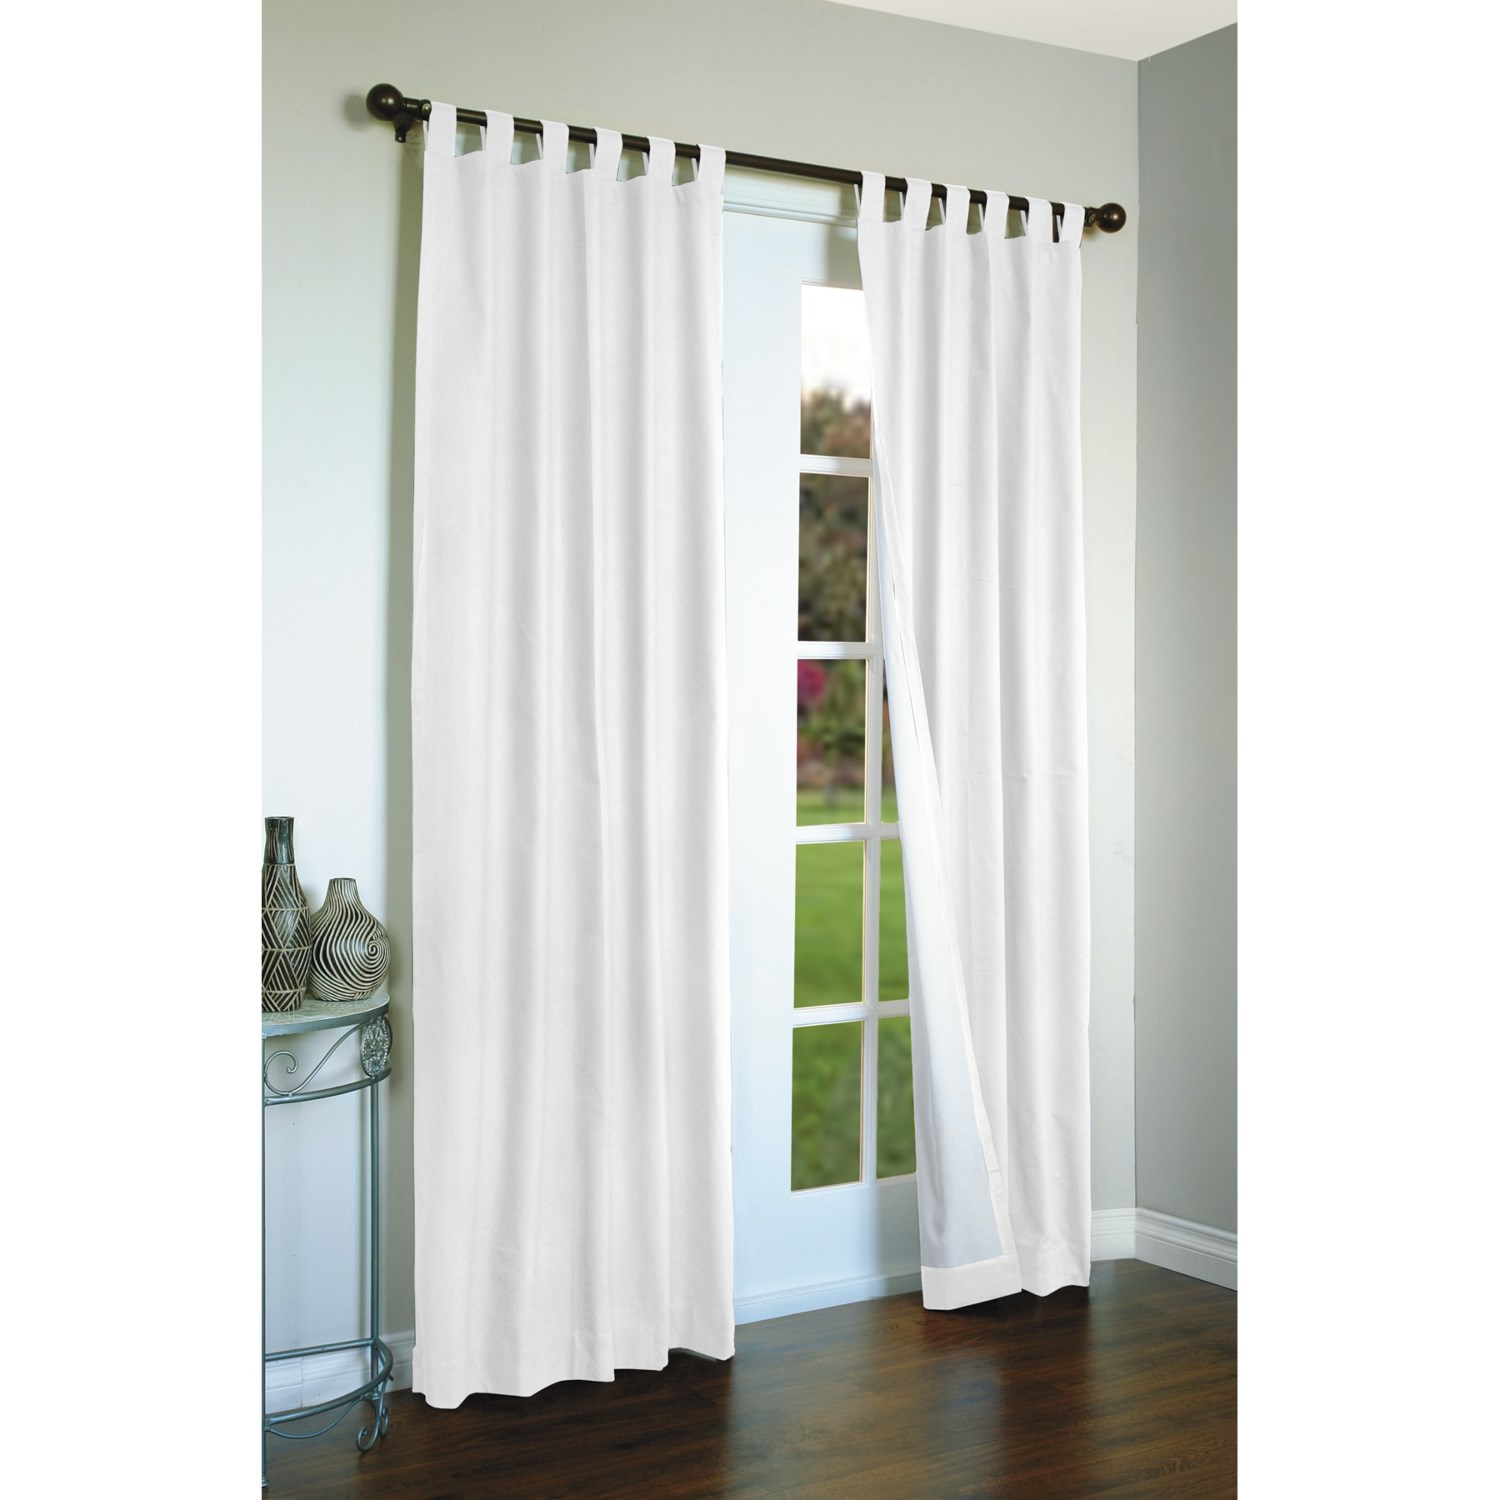 Image Result For Insulated Window Curtains D S